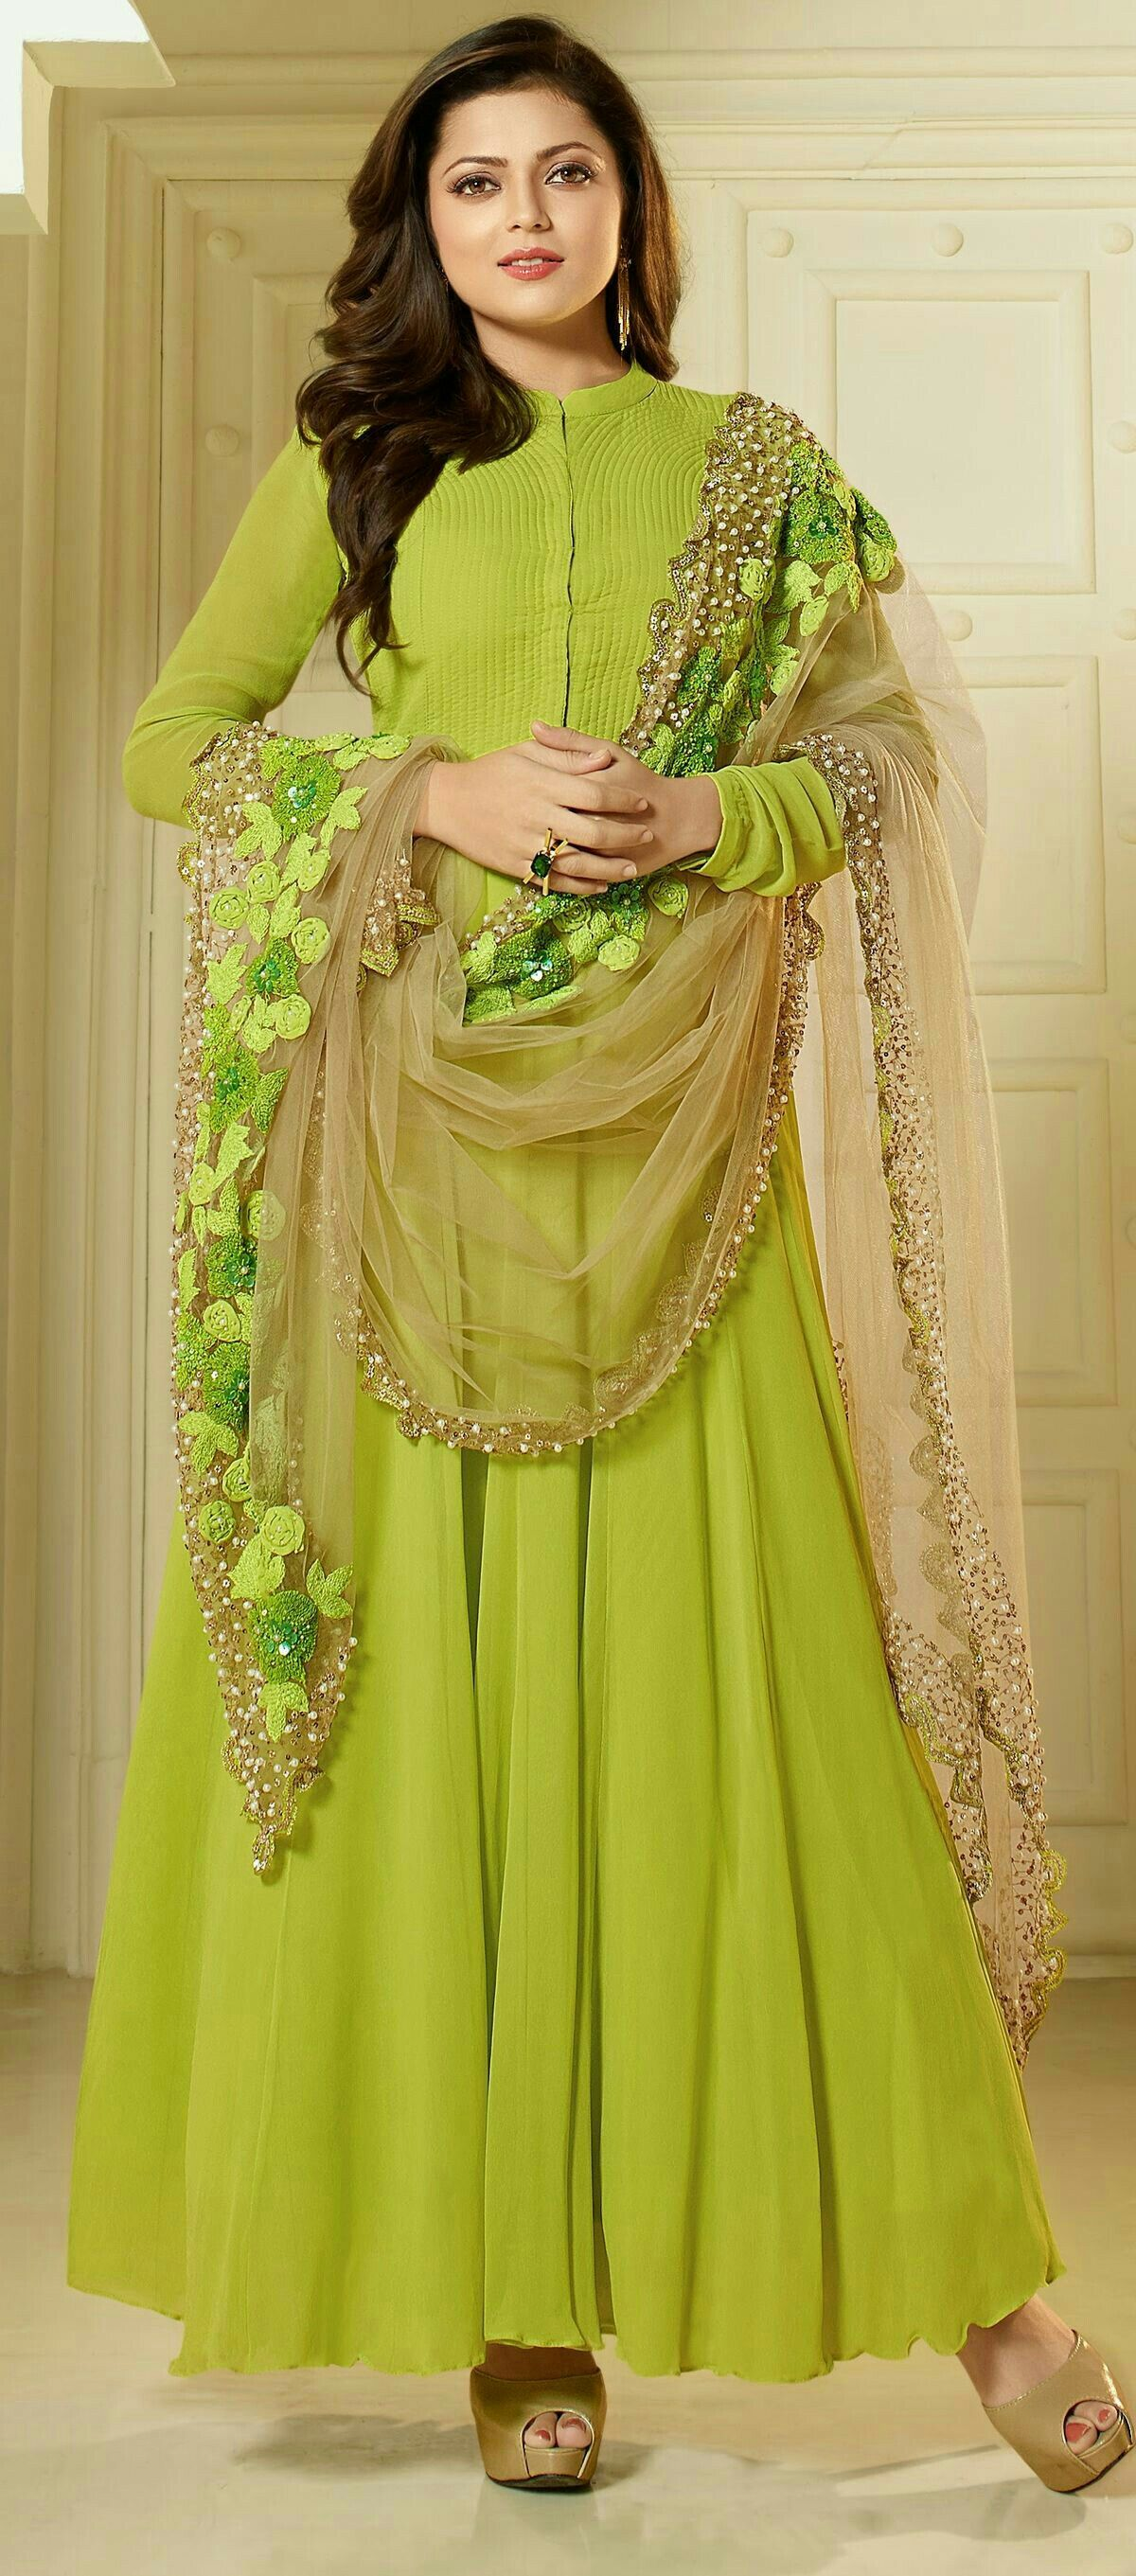 9305969f2b Long green and gold dress